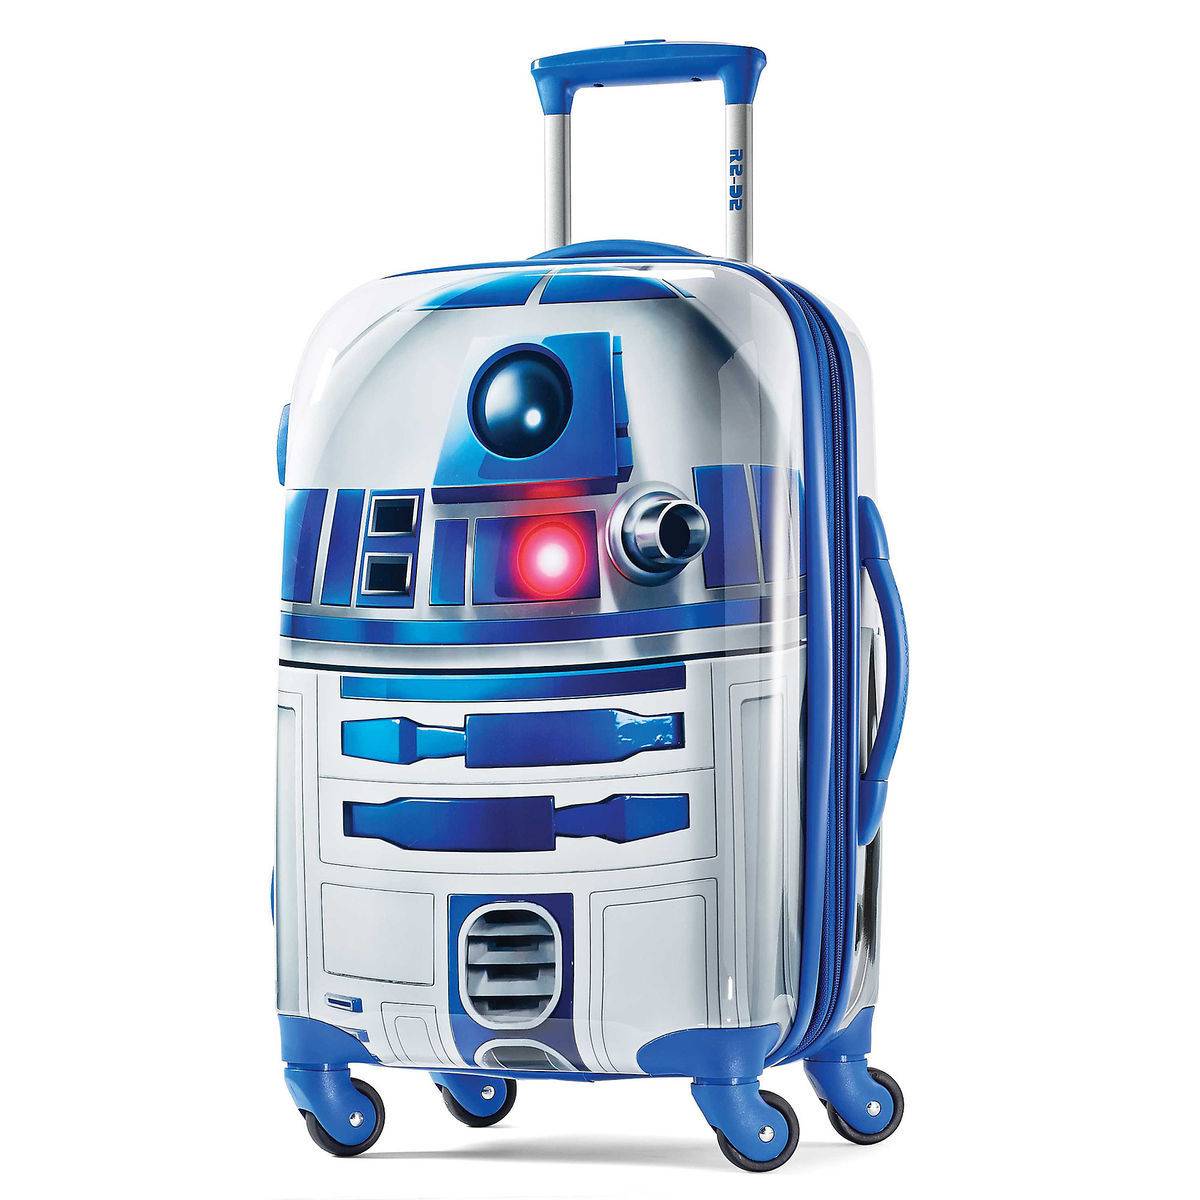 Product Image Of R2 D2 Luggage Star Wars American Tourister Small